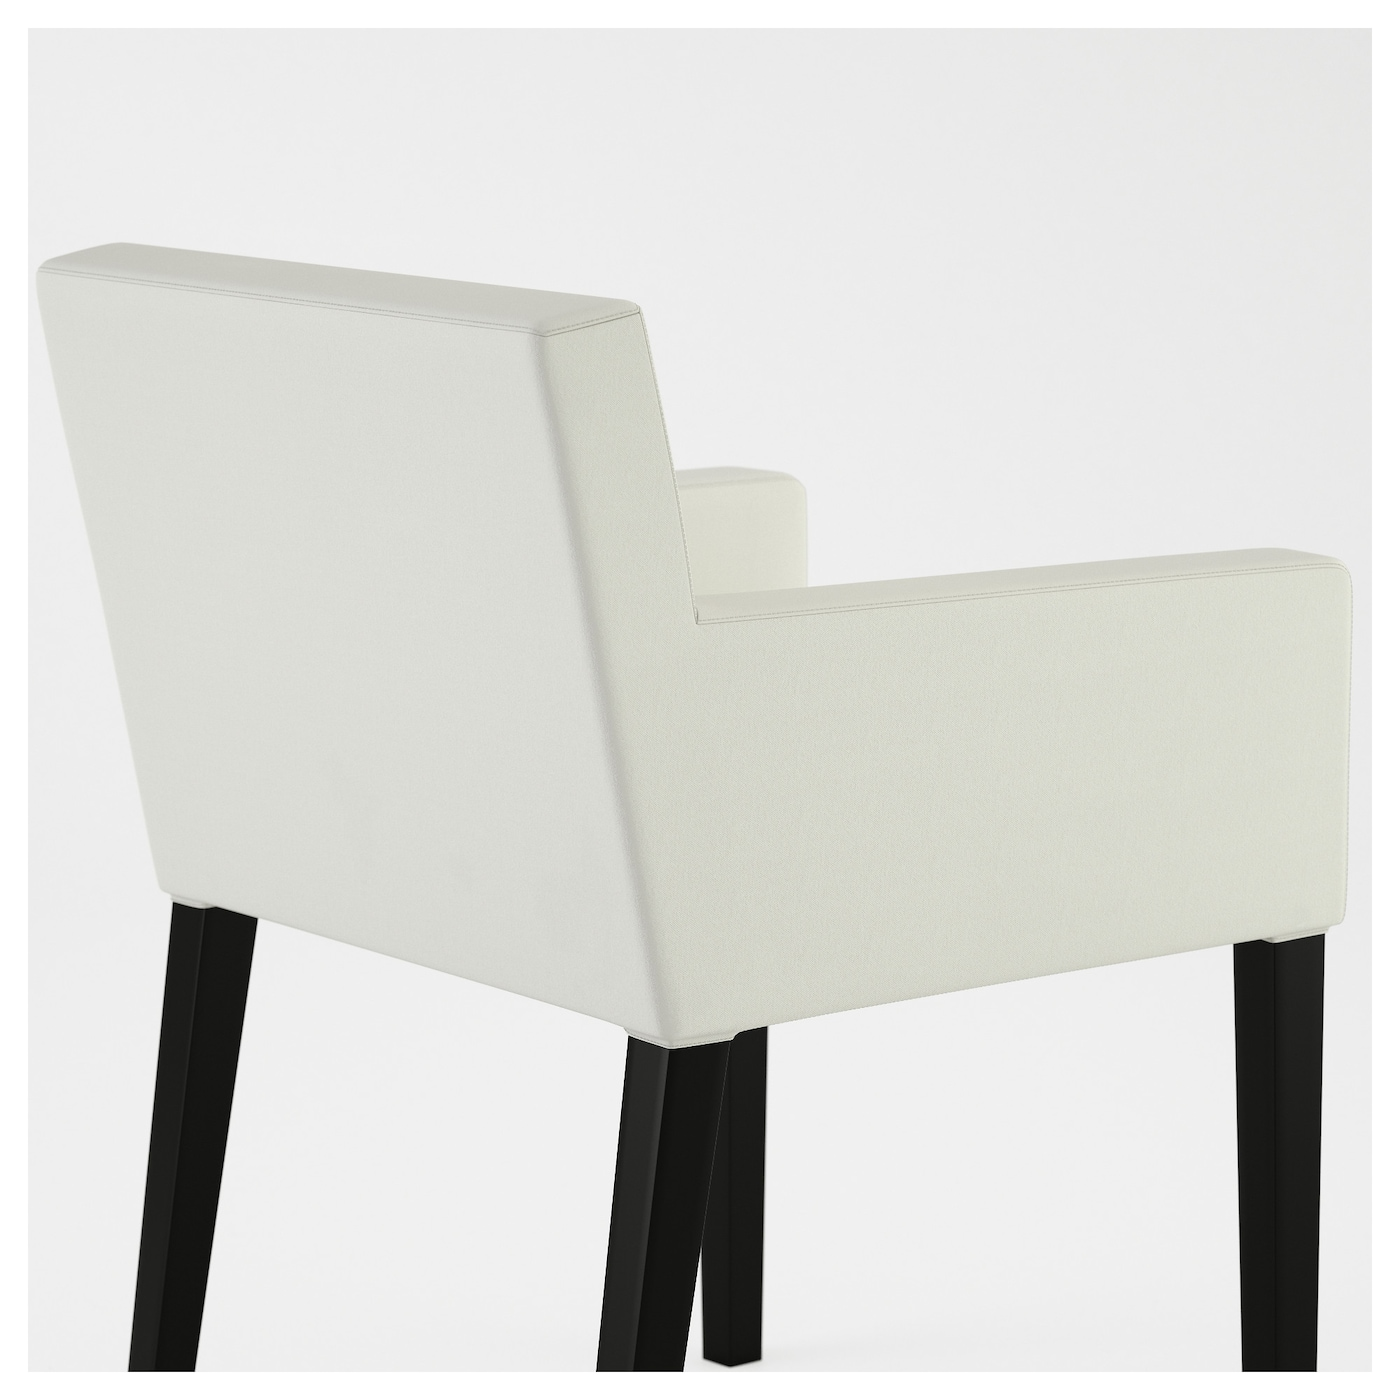 nils chaise accoudoirs noir blekinge blanc ikea. Black Bedroom Furniture Sets. Home Design Ideas